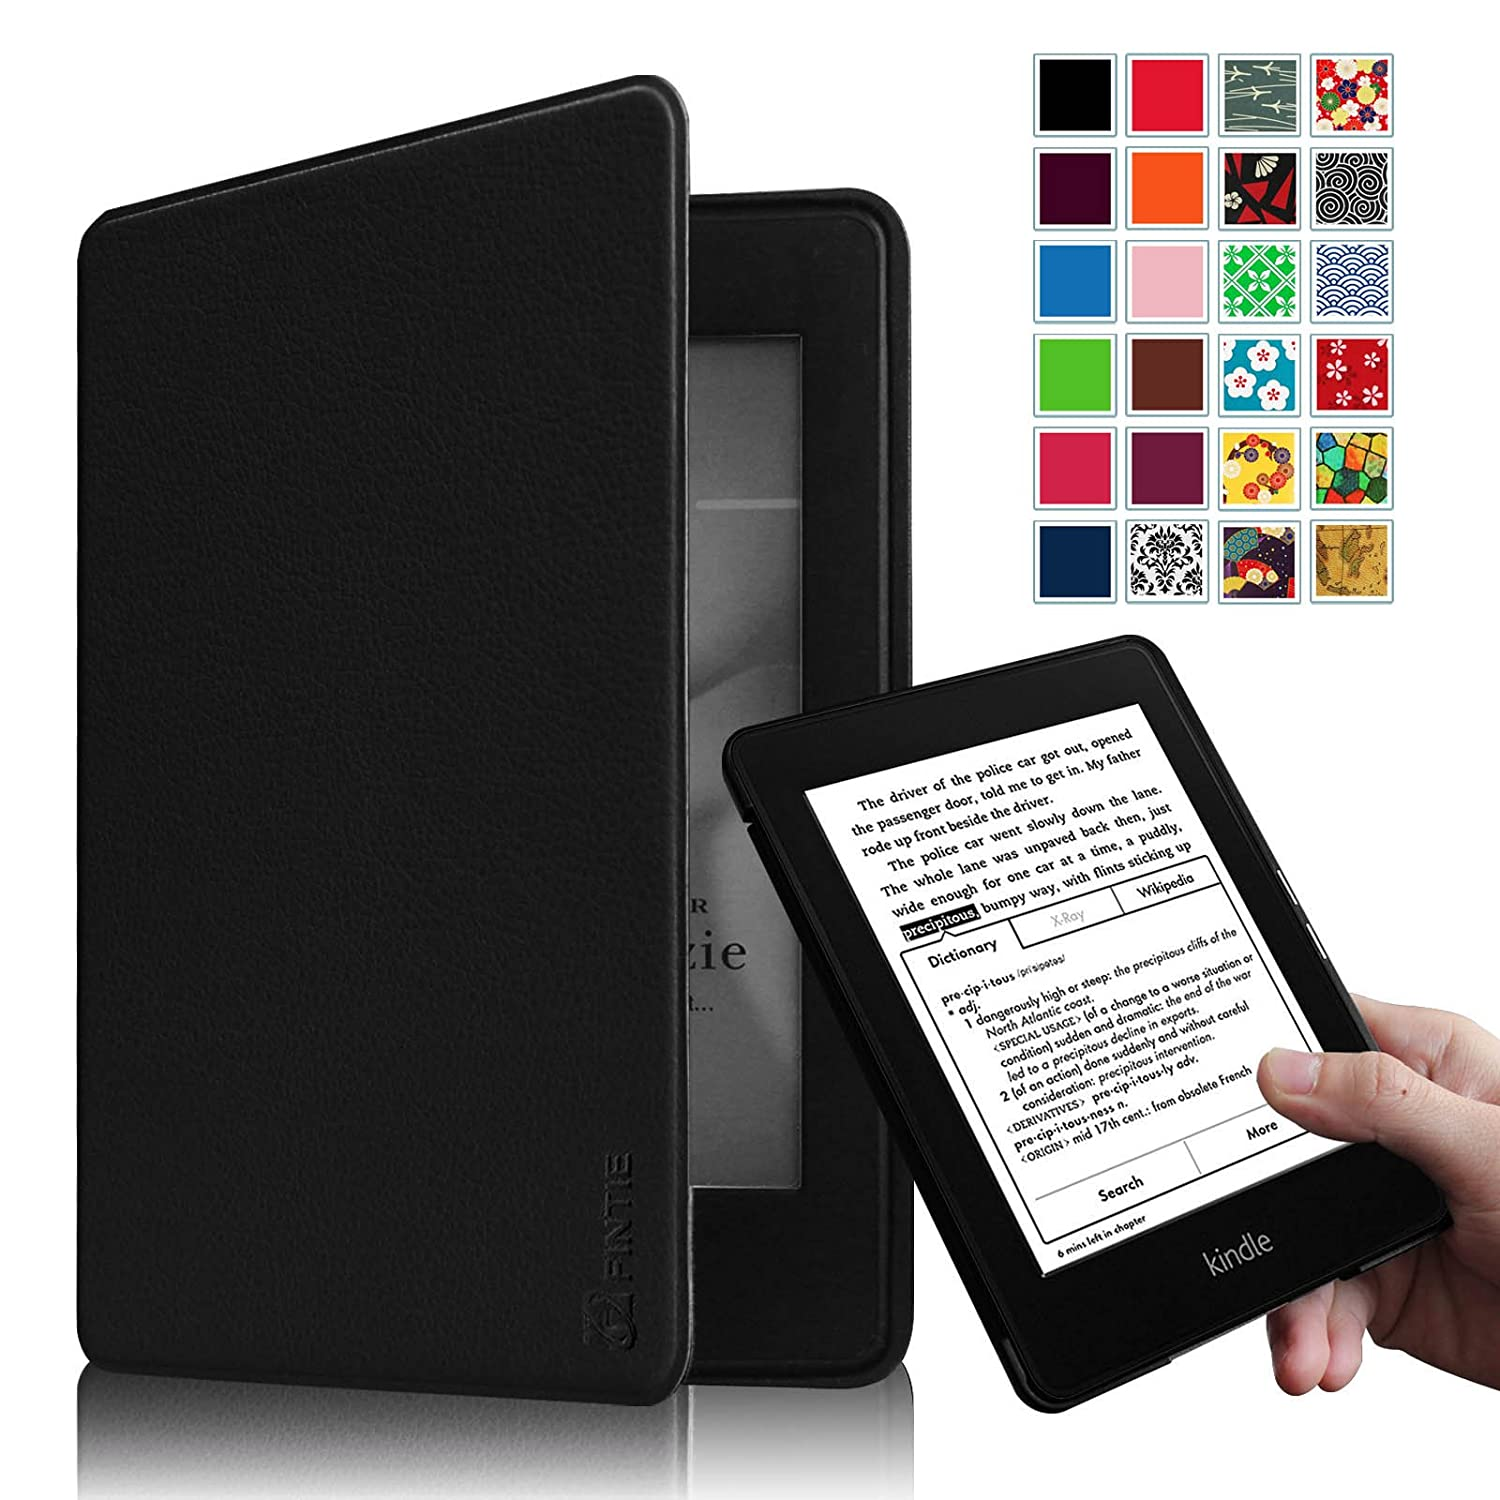 Fintie Kindle Paperwhite Case - (Blade X1) Premium Protective Smart Shell Leather Cover for All-New Amazon Kindle Paperwhite (Fits All versions: 2012, 2013, 2014 and 2015 New 300 PPI), Black